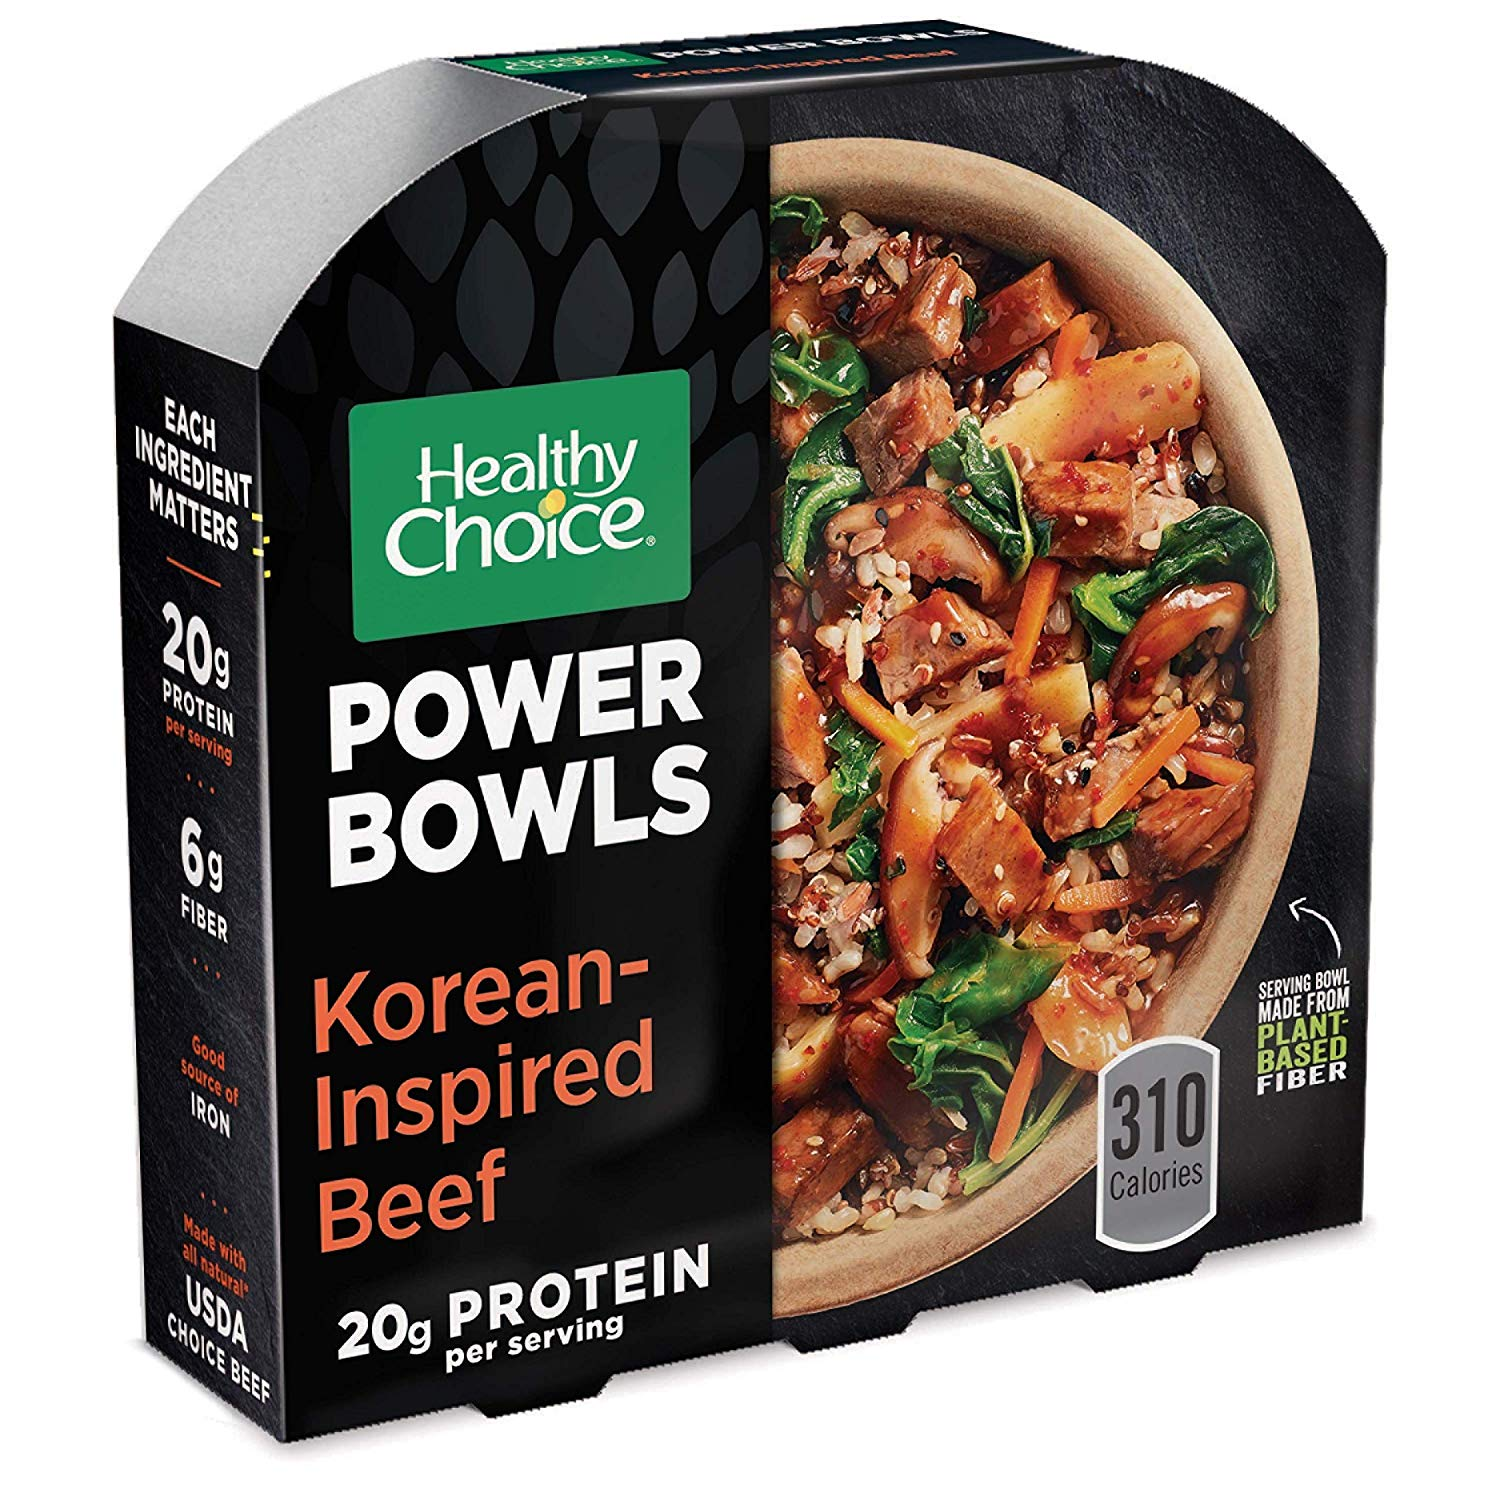 Healthy Choice Power Bowls Frozen Dinner Korean-Inspired Beef Bowl